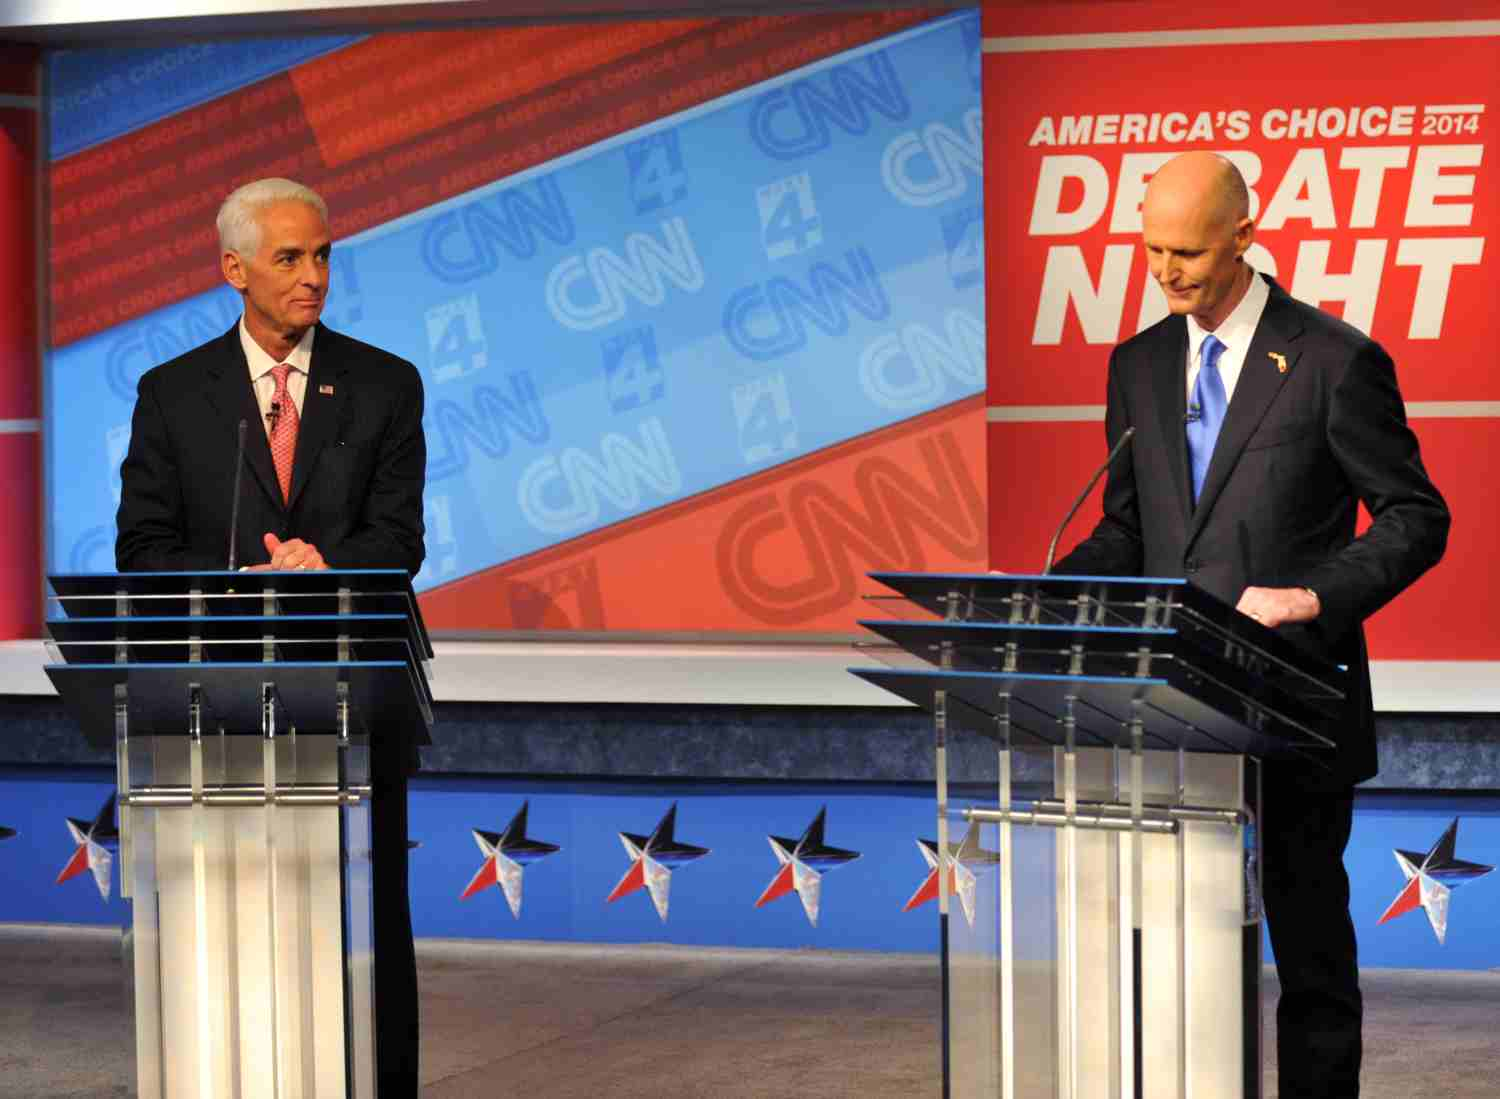 Former Gov. Charlie Crist and current Gov. Rick Scott debated in Jacksonville on Oct. 21, 2014.